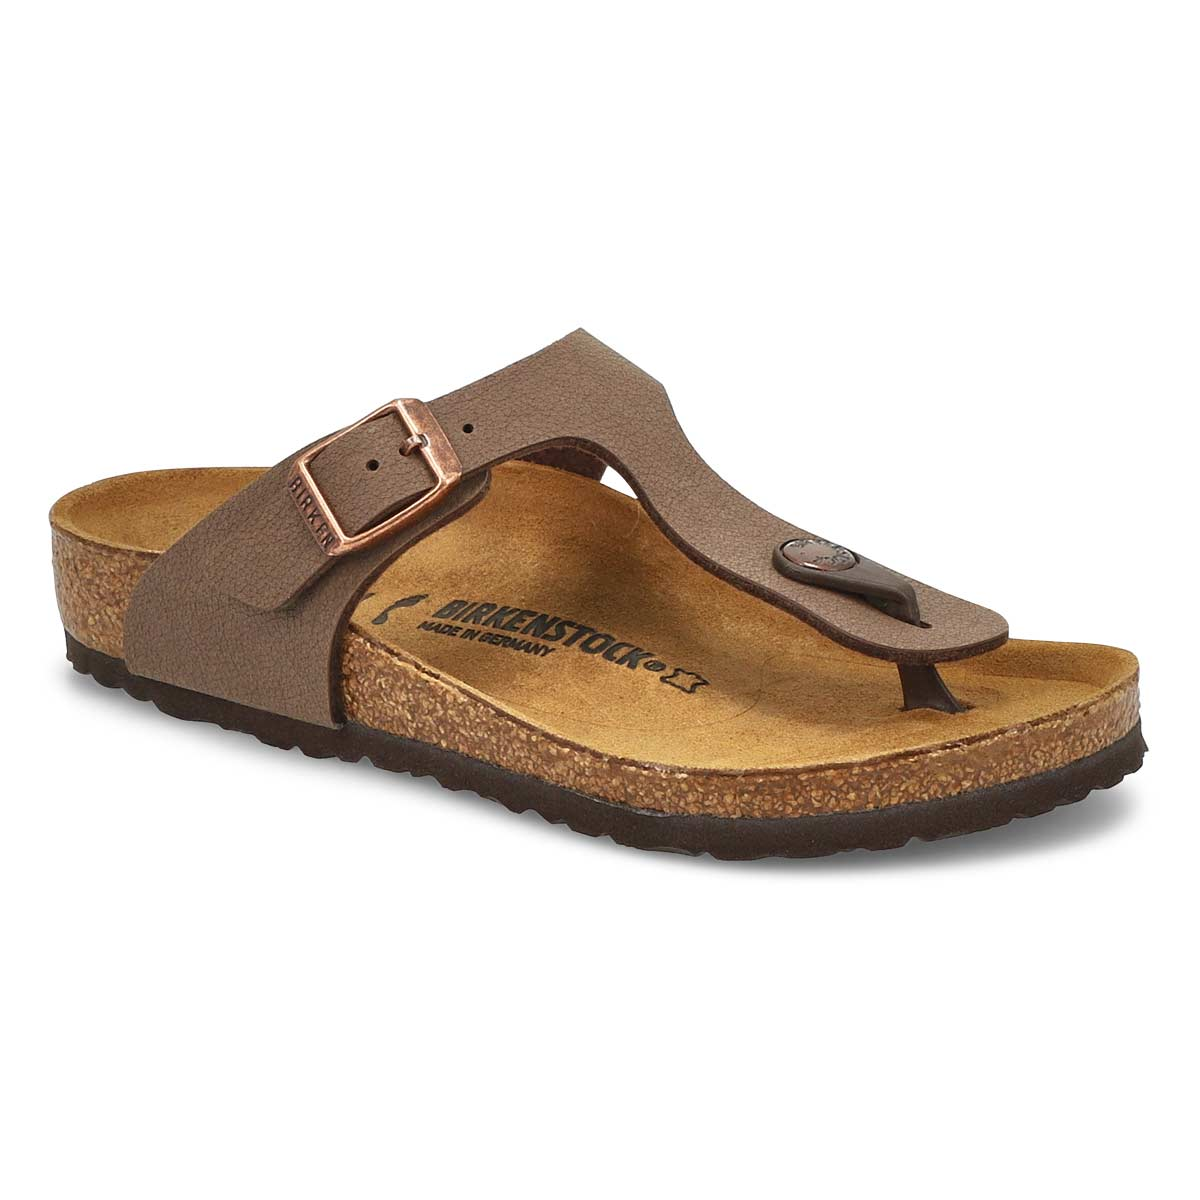 Girls' GIZEH mocha thong cork sandals - Narrow